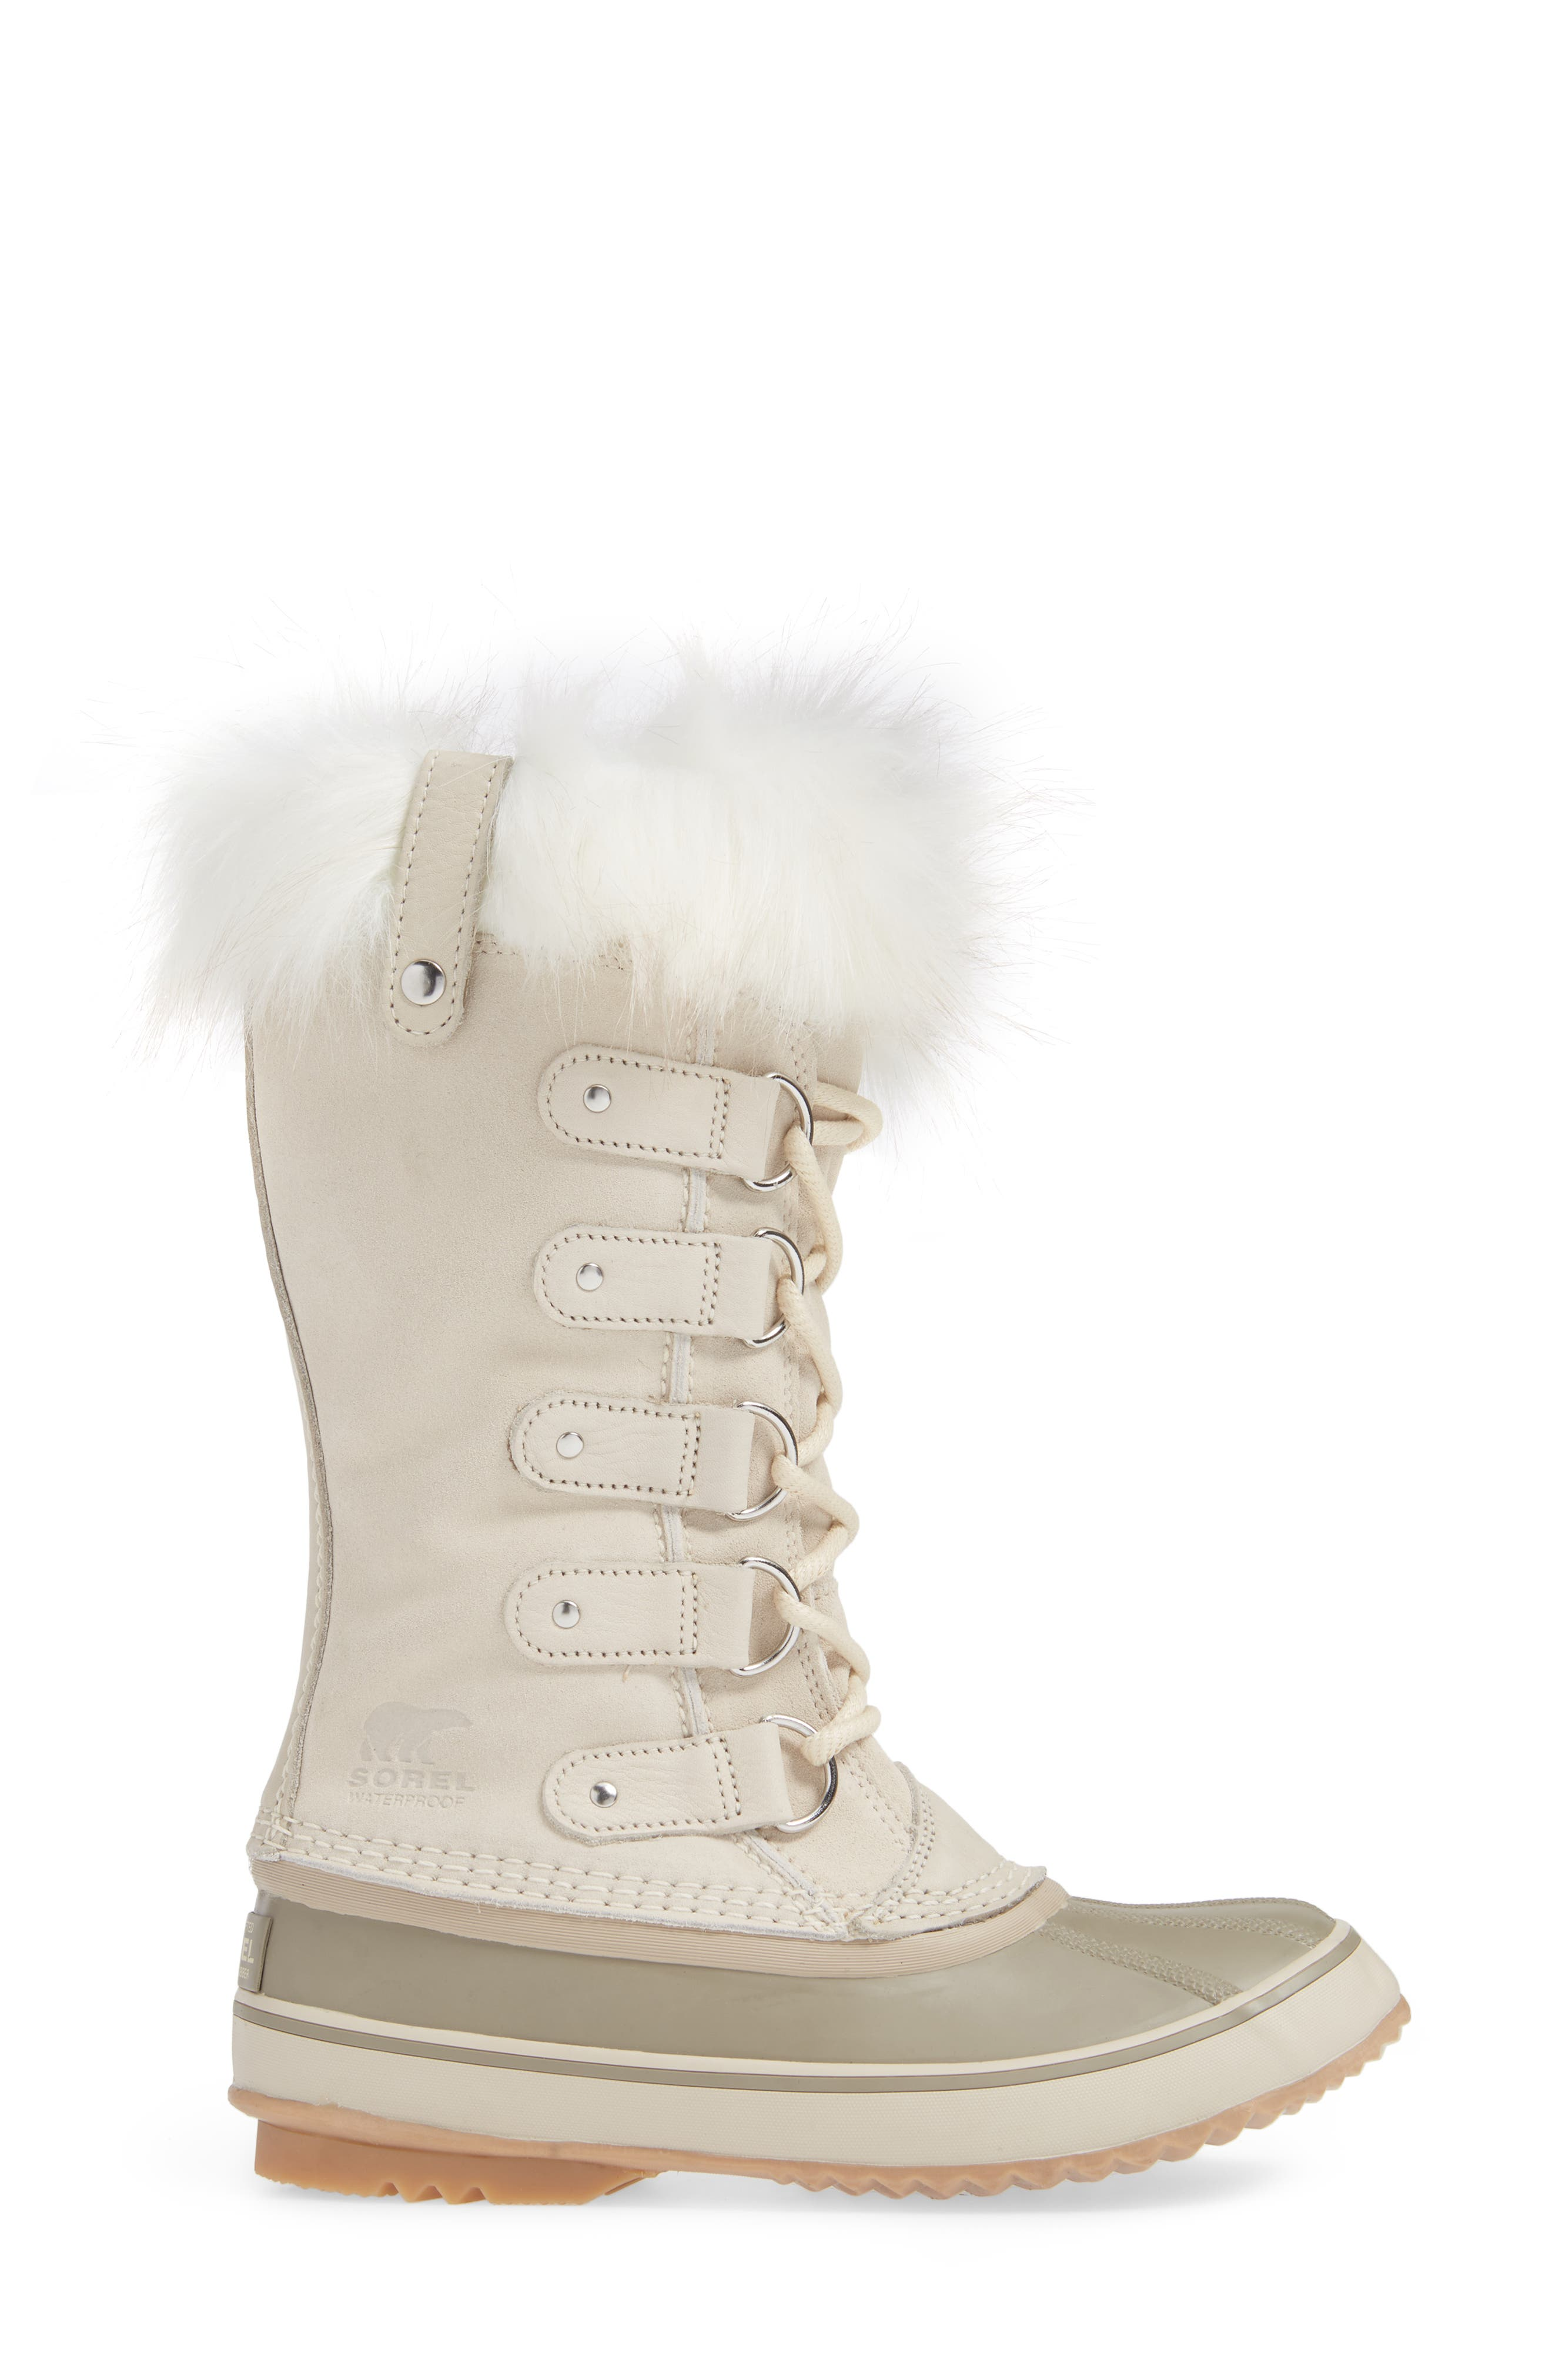 'Joan of Arctic' Waterproof Snow Boot,                             Alternate thumbnail 3, color,                             FAWN